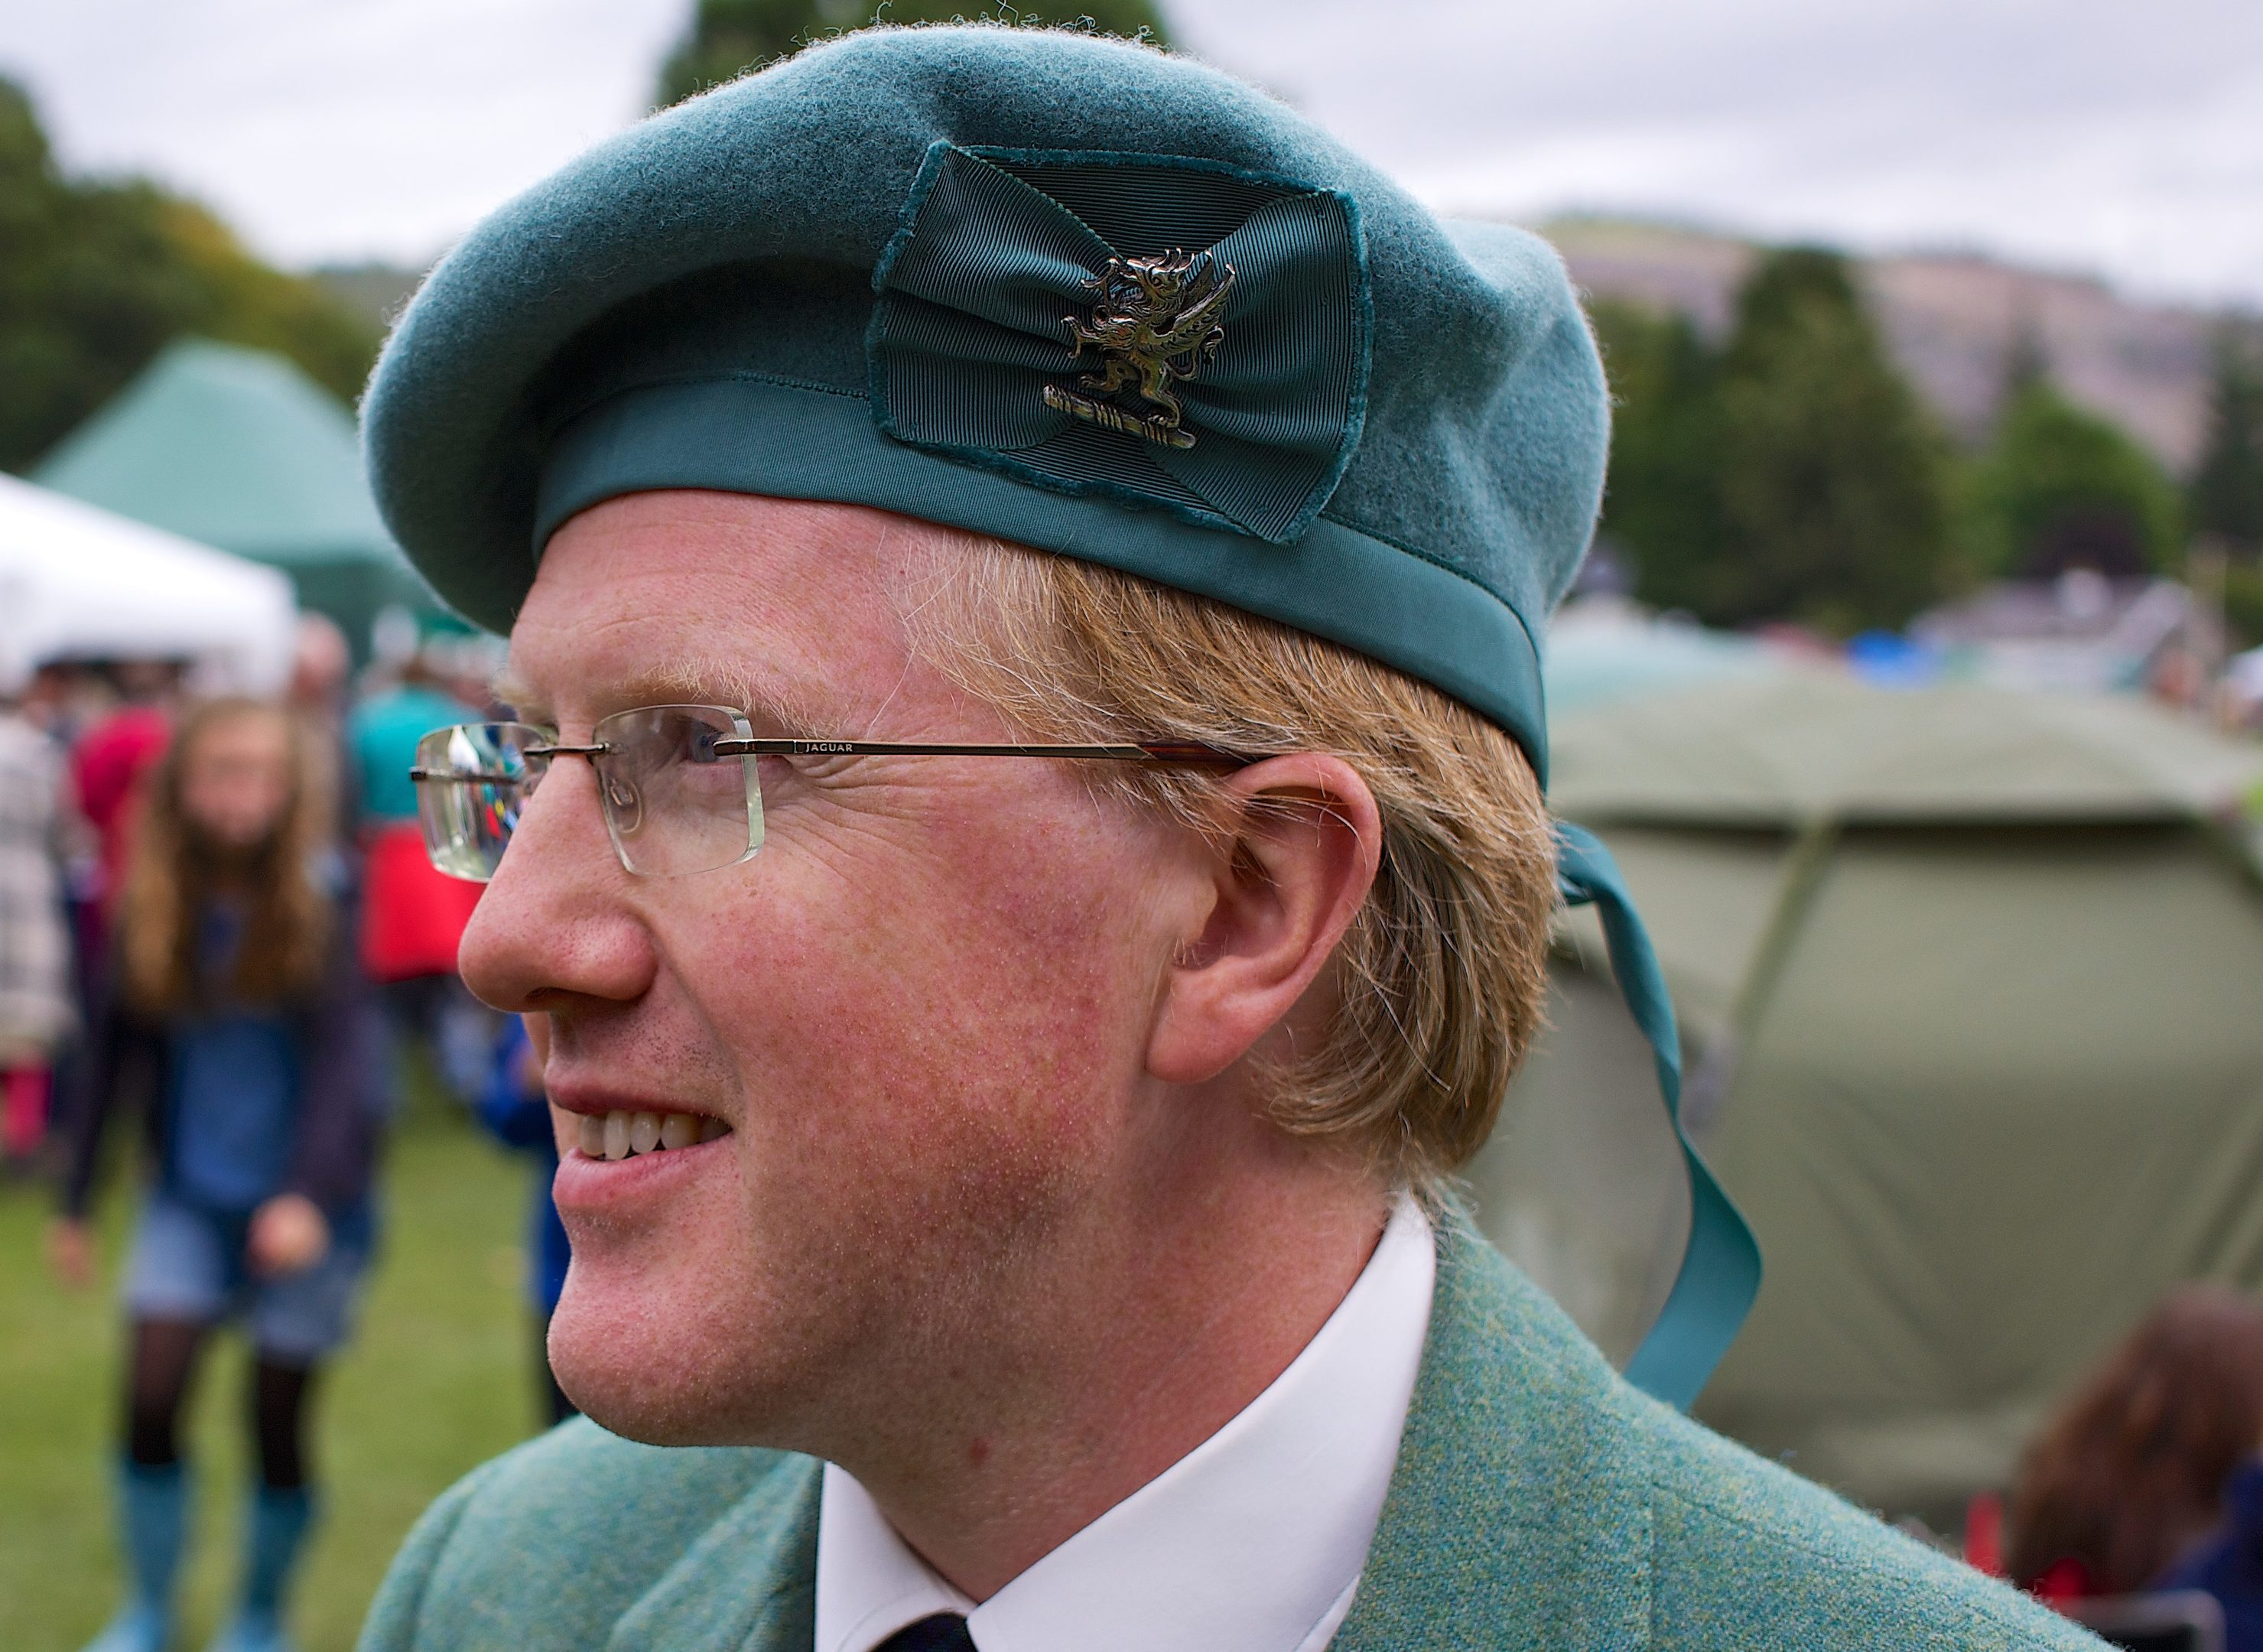 Chieftain of the Birnam Highland Games, Thomas Steuart Fothringham, at the 2014 Games.